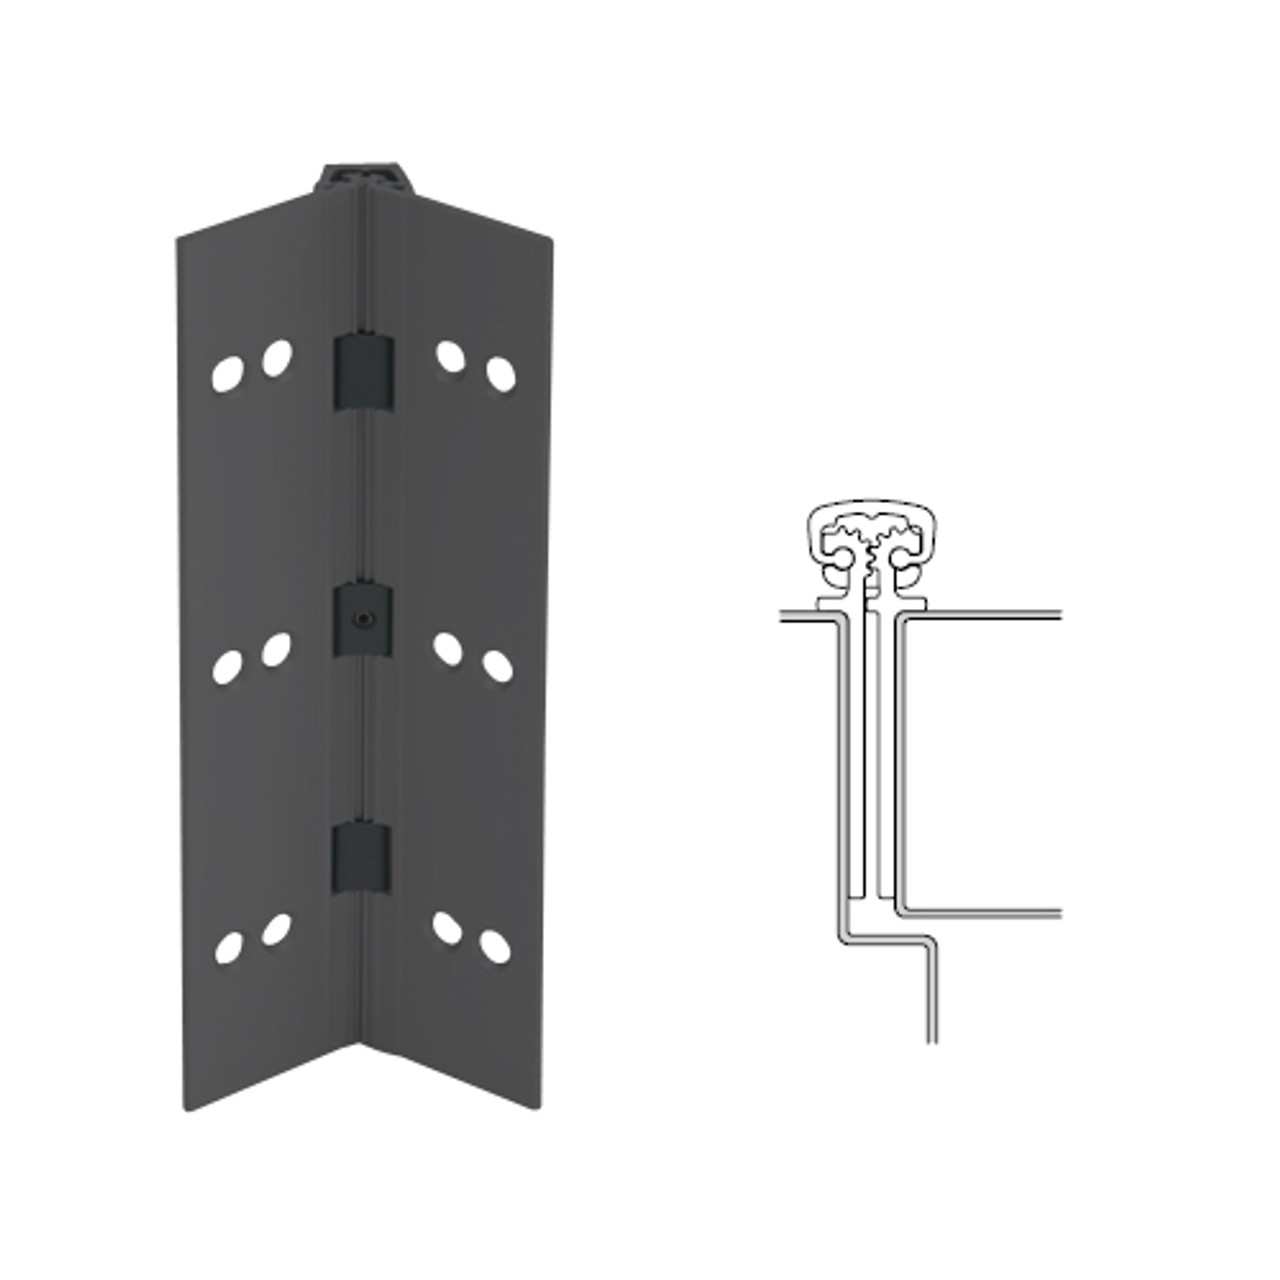 027XY-315AN-95-SECWDHM IVES Full Mortise Continuous Geared Hinges with Security Screws - Hex Pin Drive in Anodized Black